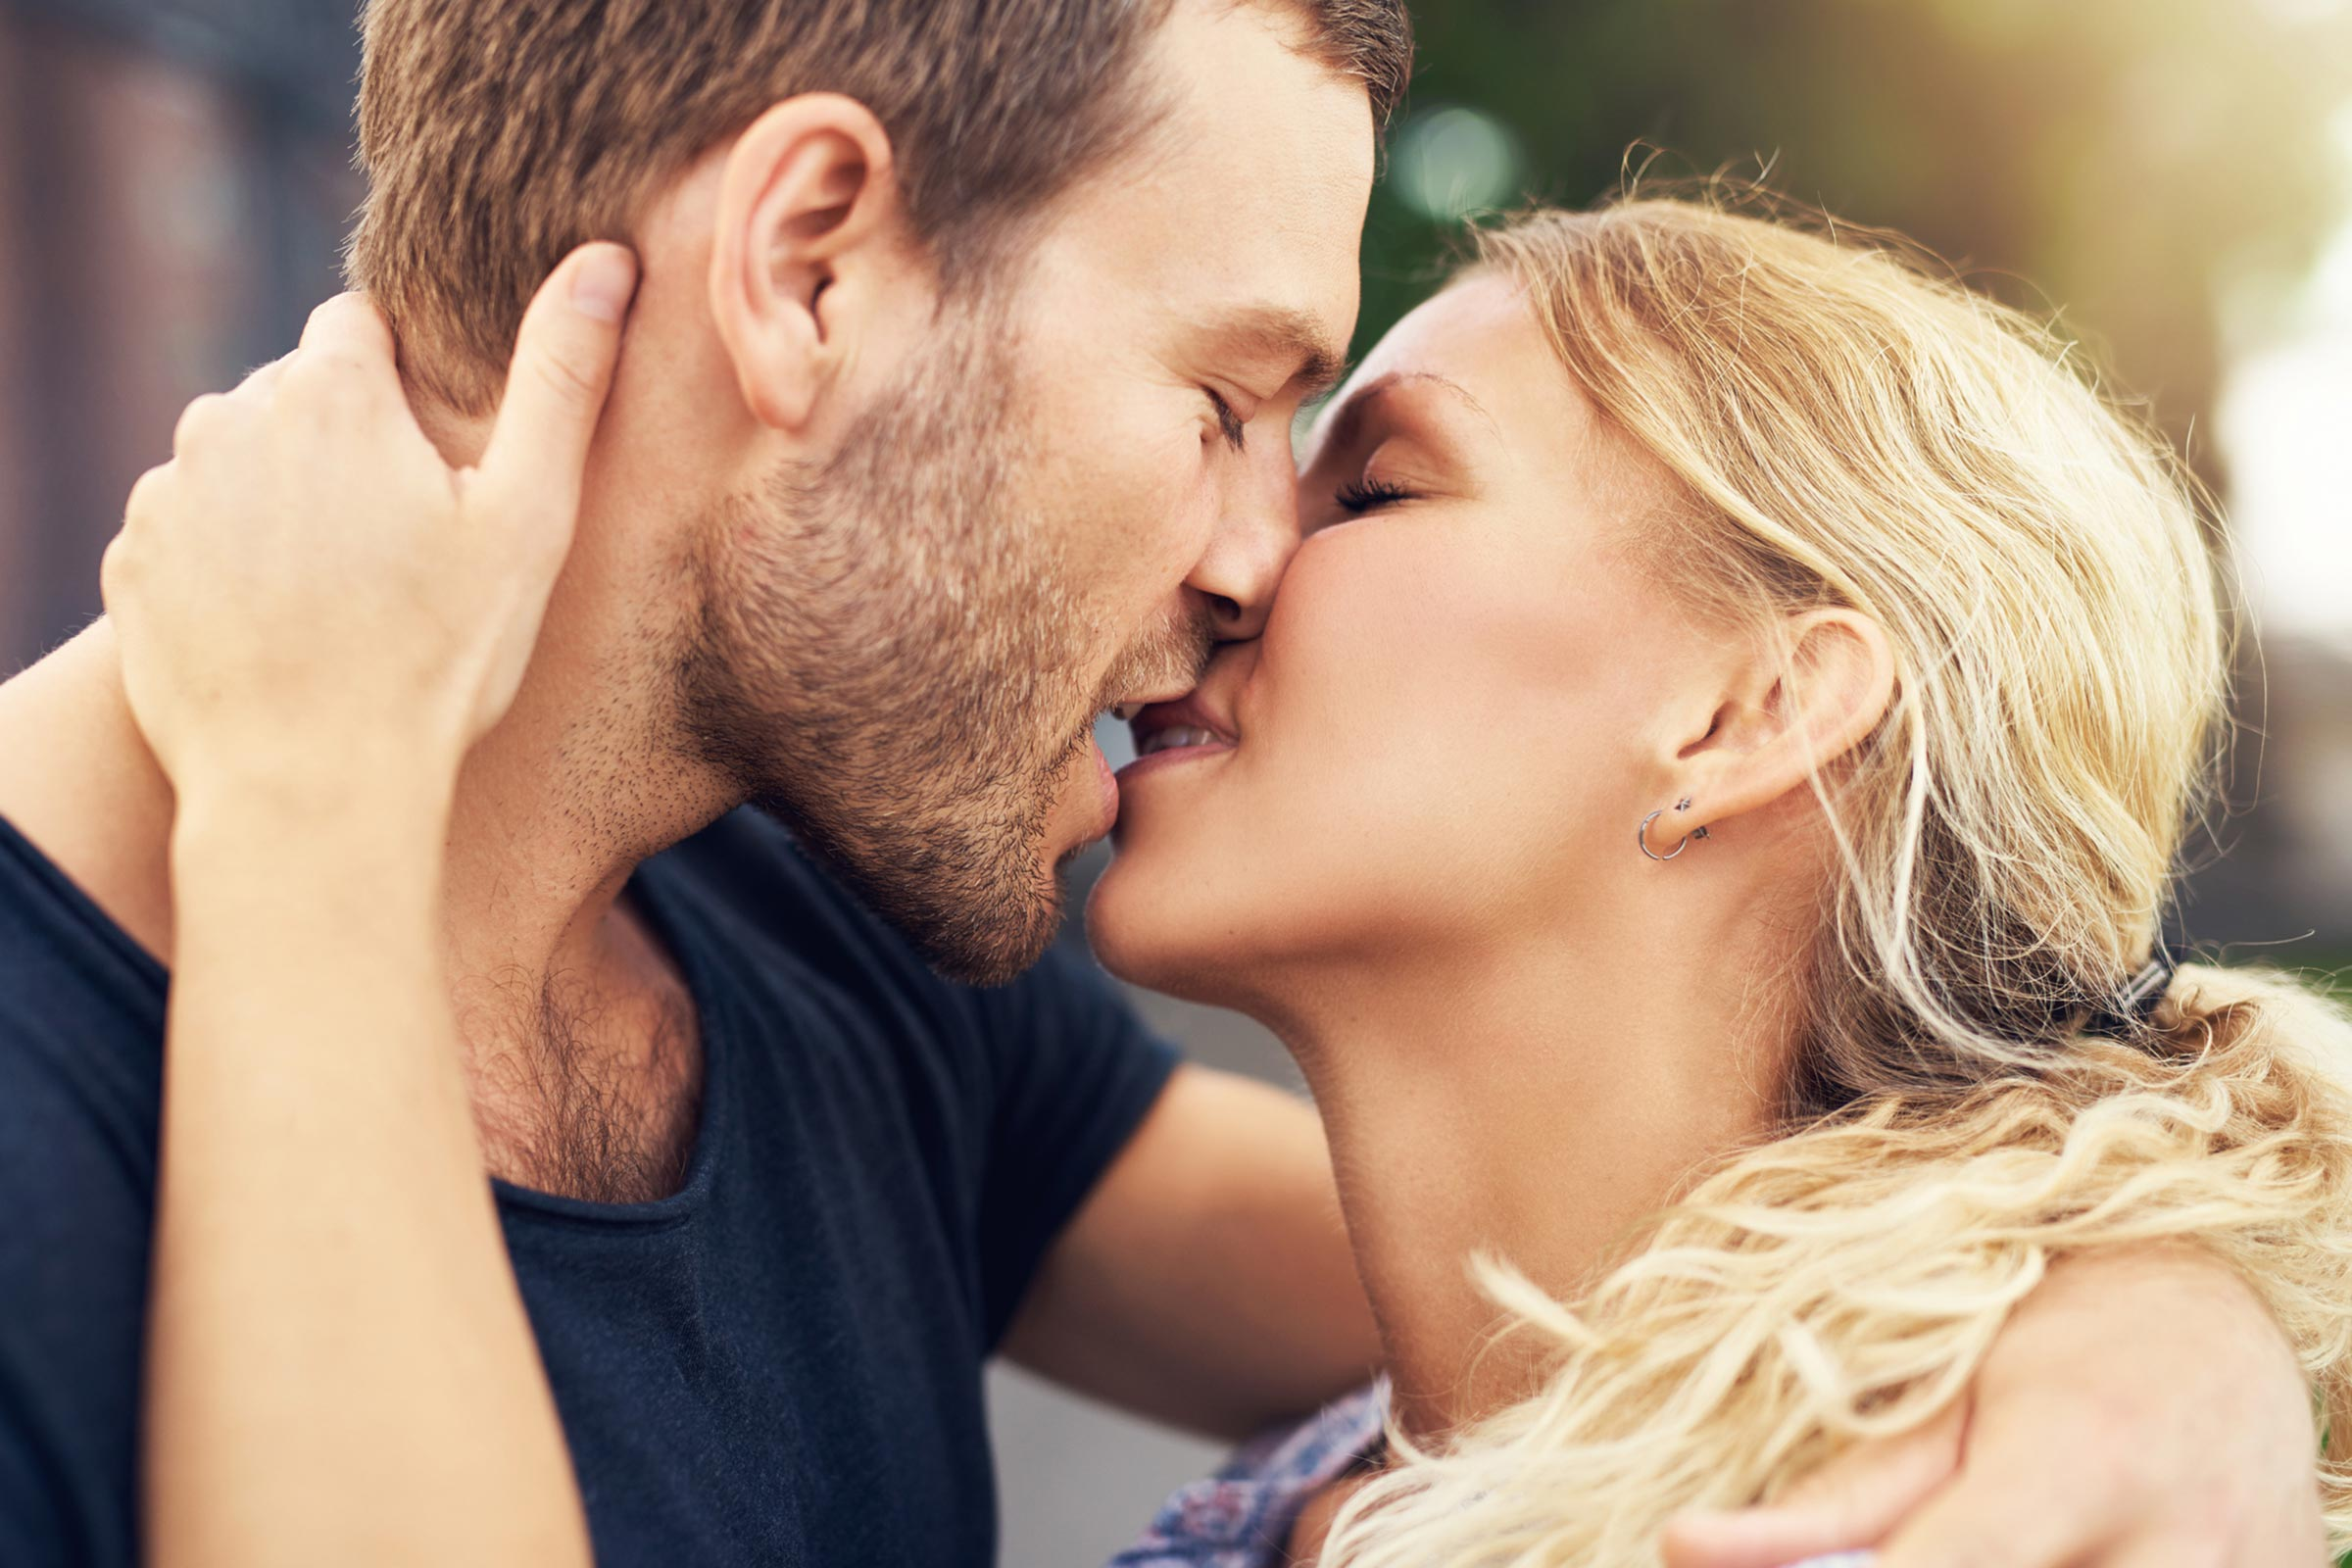 Fun Facts About Kissing You Didn't Know   Reader's Digest